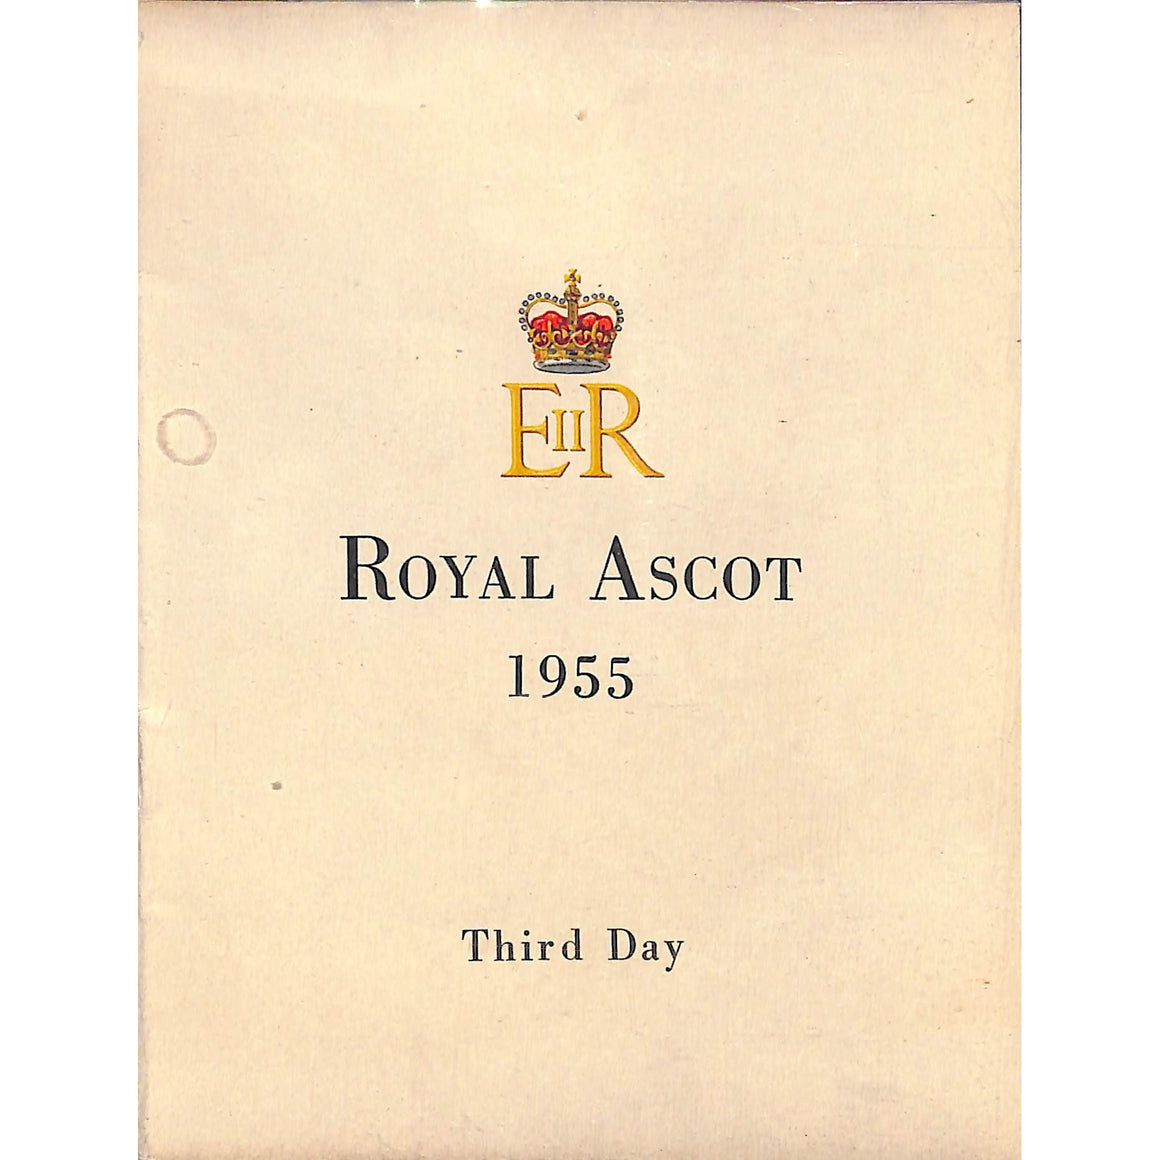 Royal Ascot 1955 Official Programme